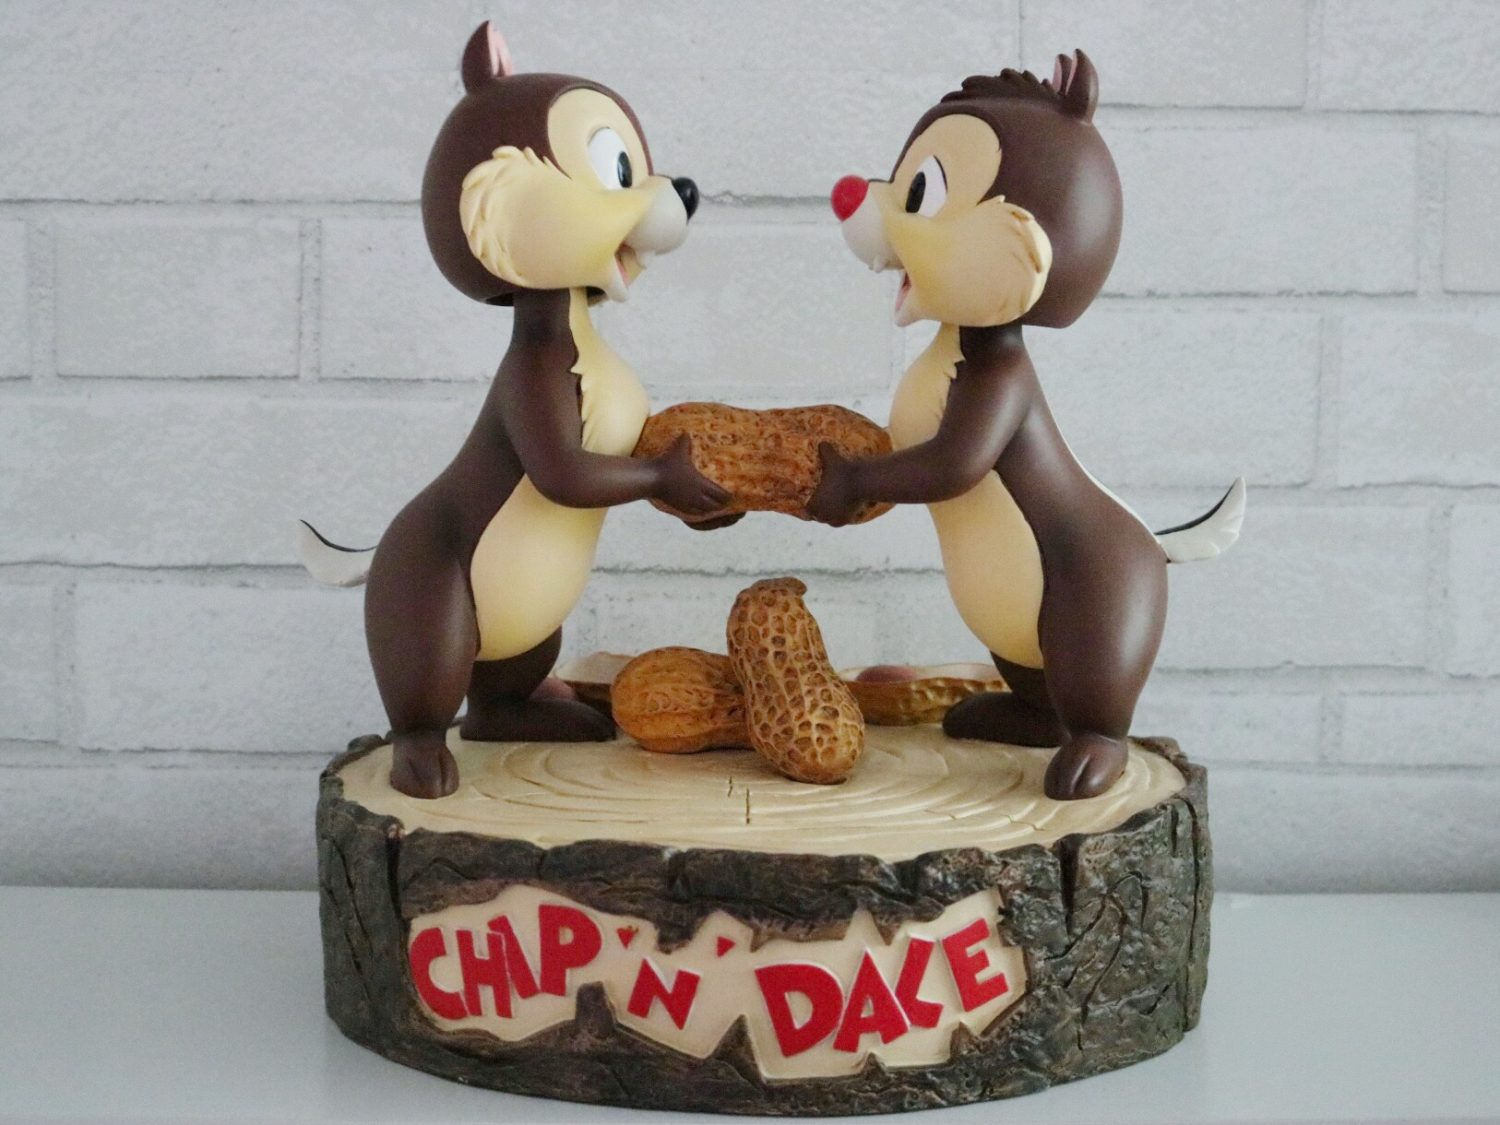 Disneyland Paris Chip 'n Dale Figurine